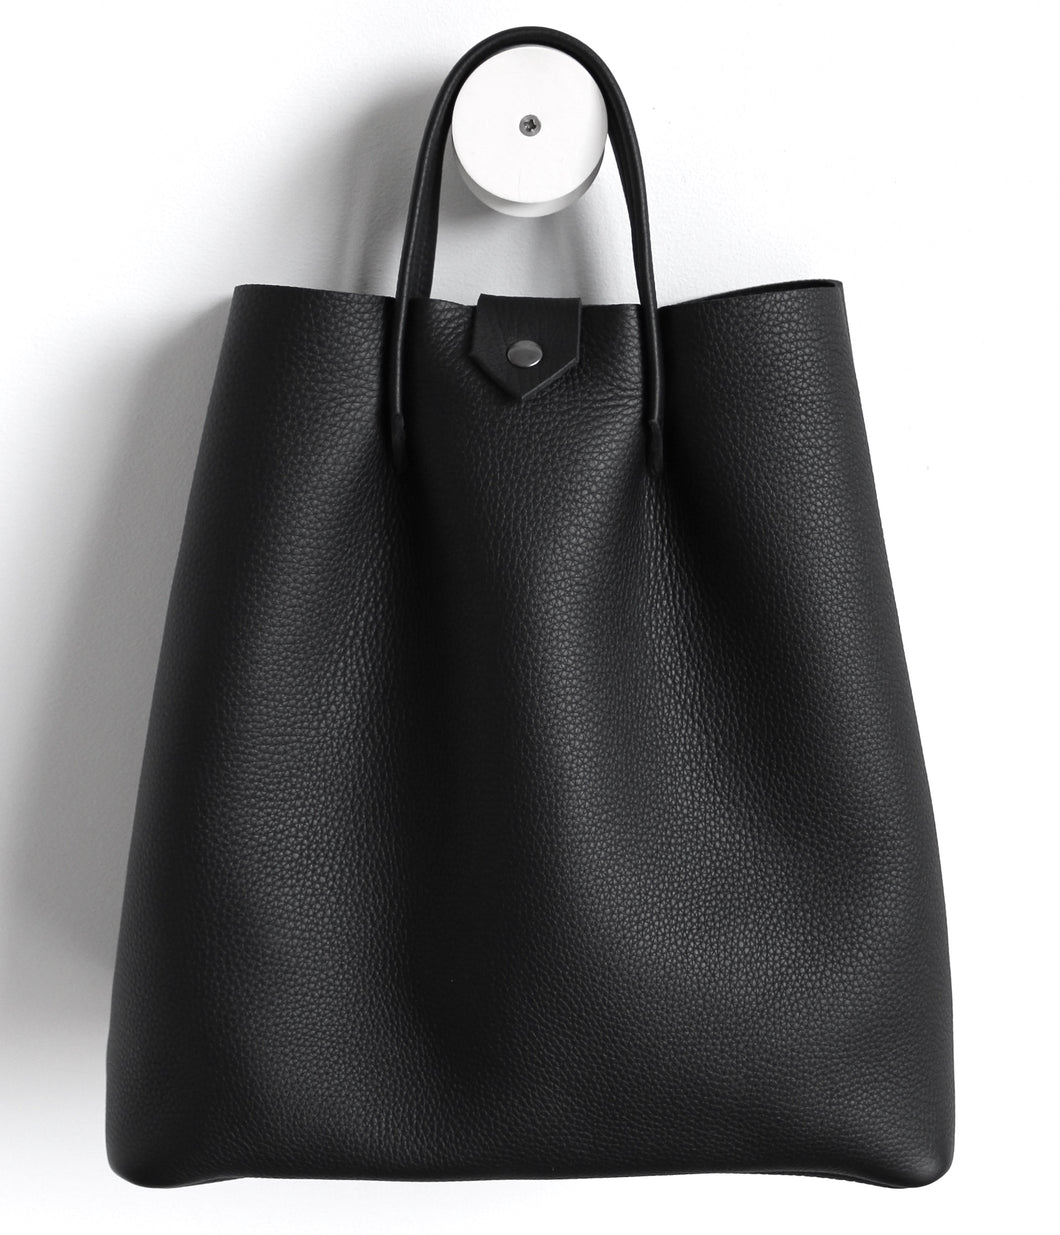 Monday frrry tote bag. shoulder strap. Black